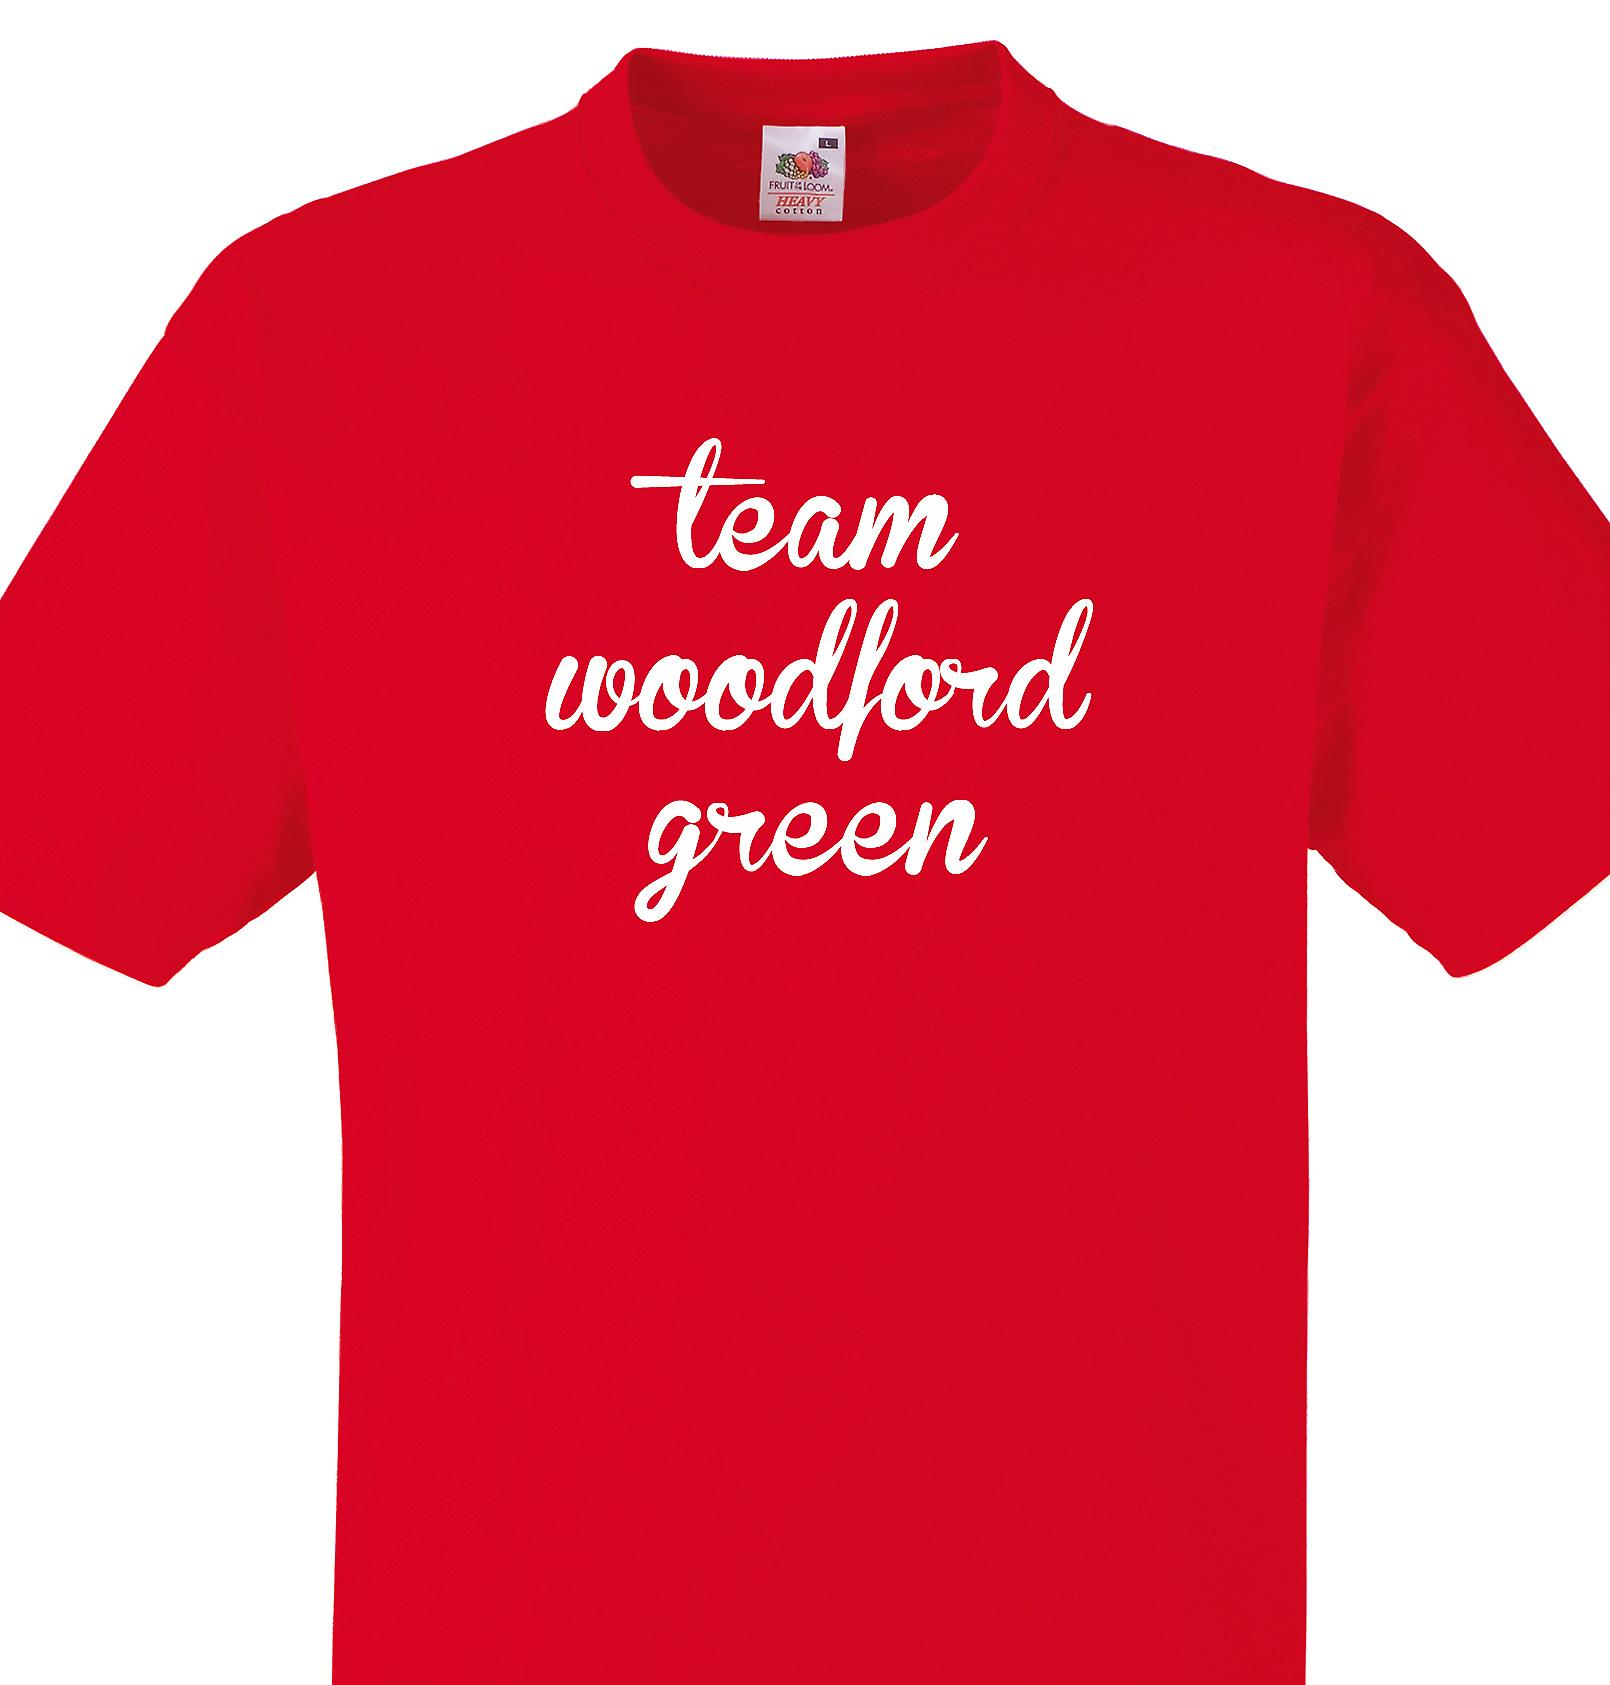 Team Woodford green Red T shirt